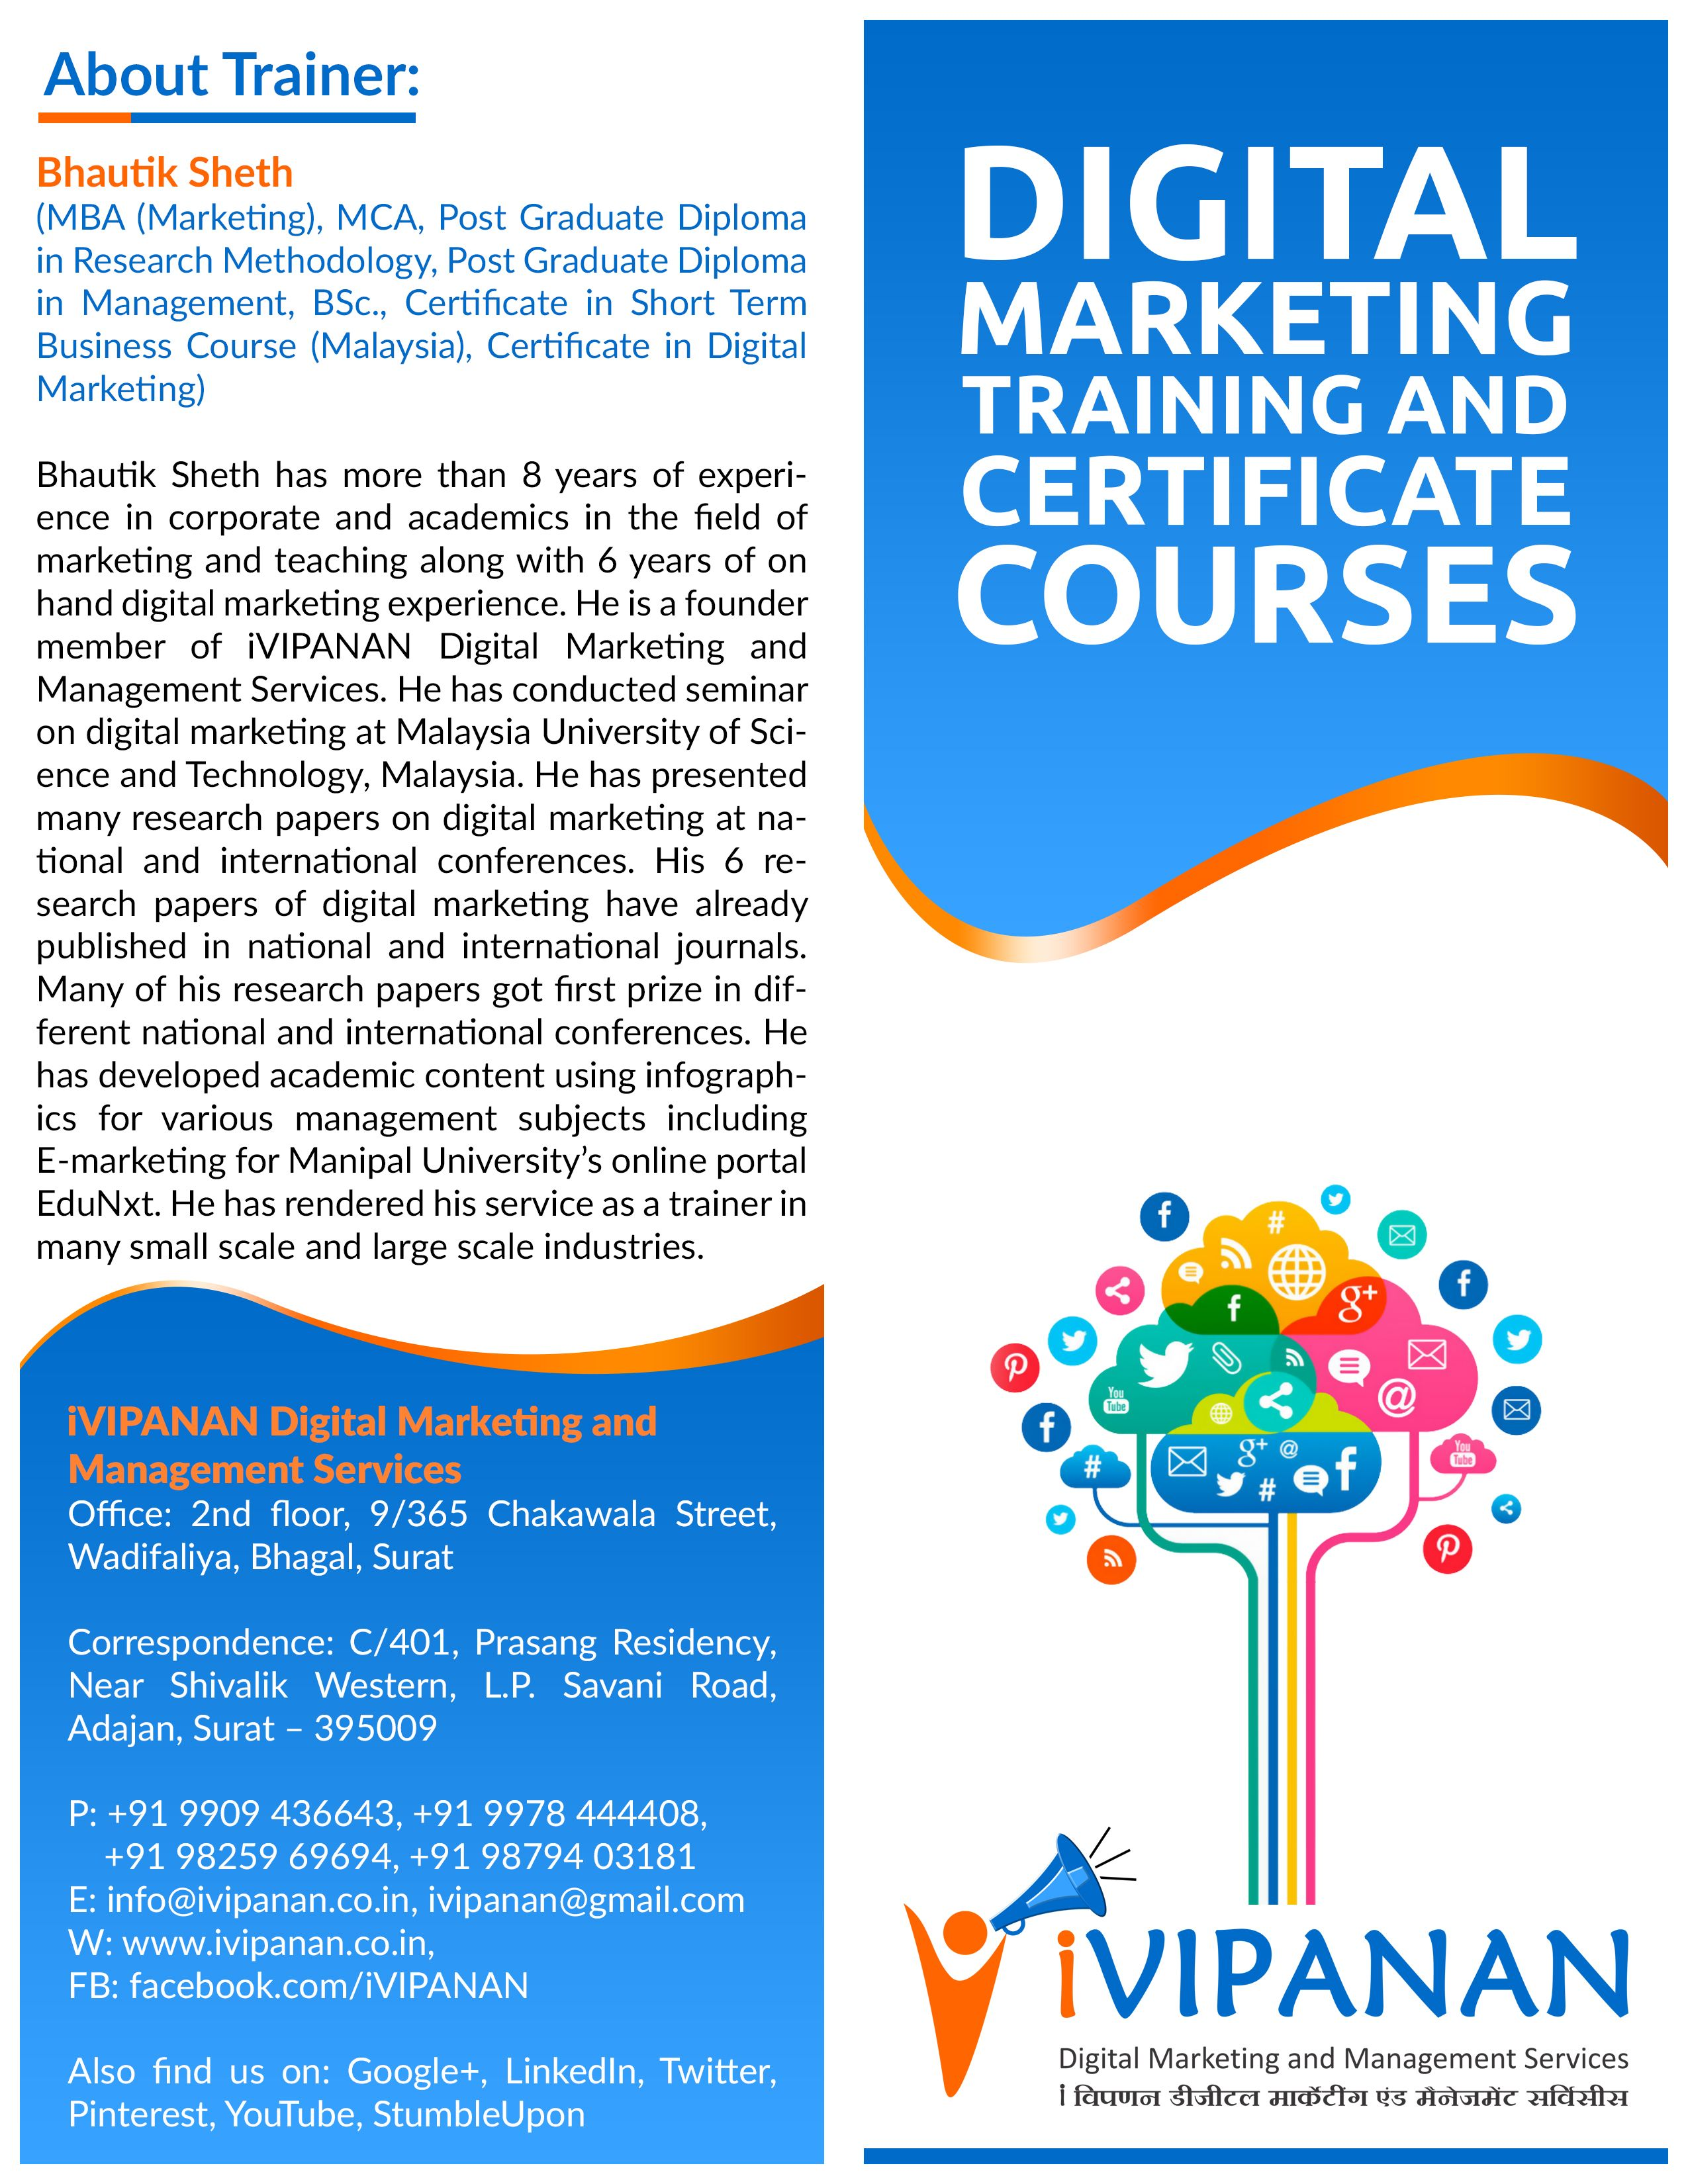 Need a online marketing agencies in san jose? #DigitalMarketing Certificate Courses and Training. Call ...